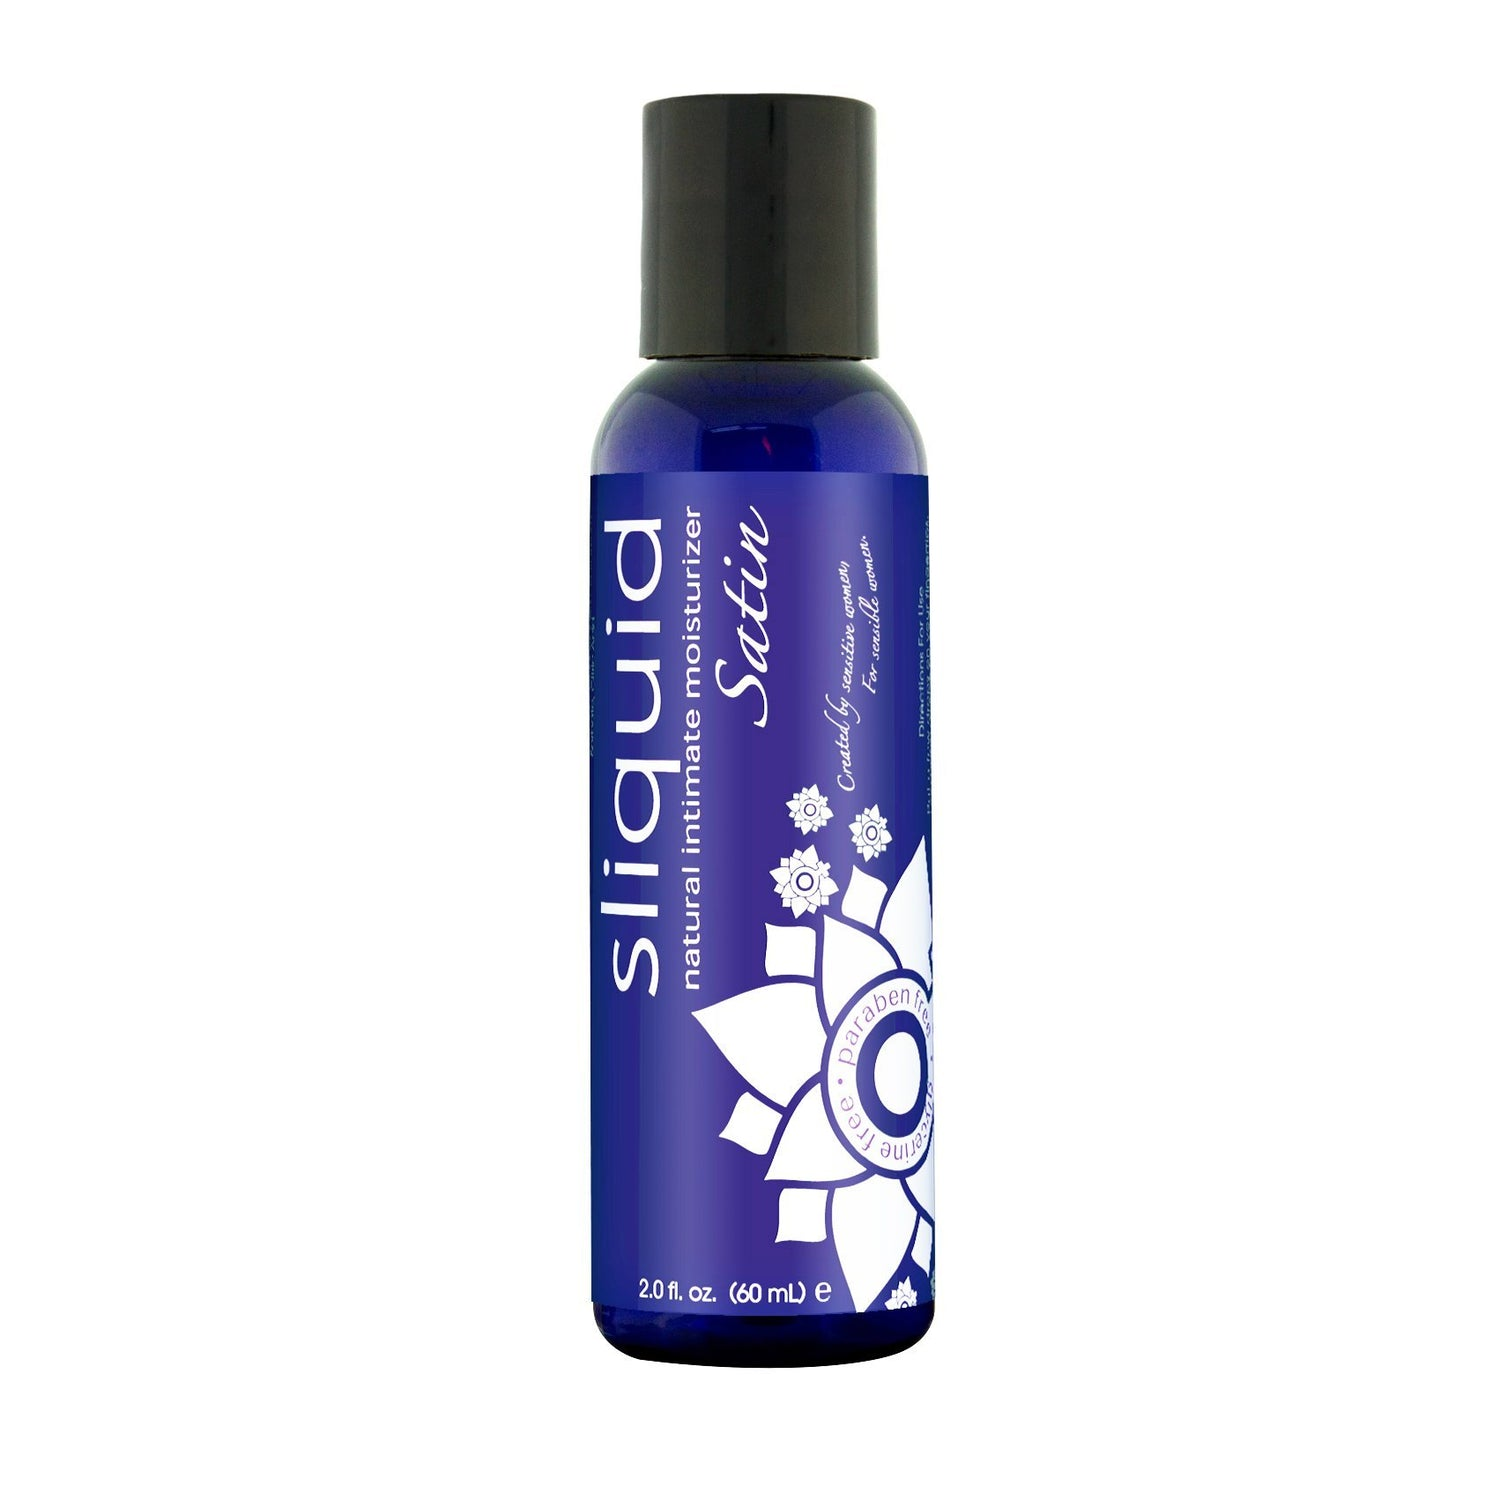 Sliquid - Satin Naturals Moisturizer Bottle 2 oz (Lube) Lube (Water Based) - CherryAffairs Singapore